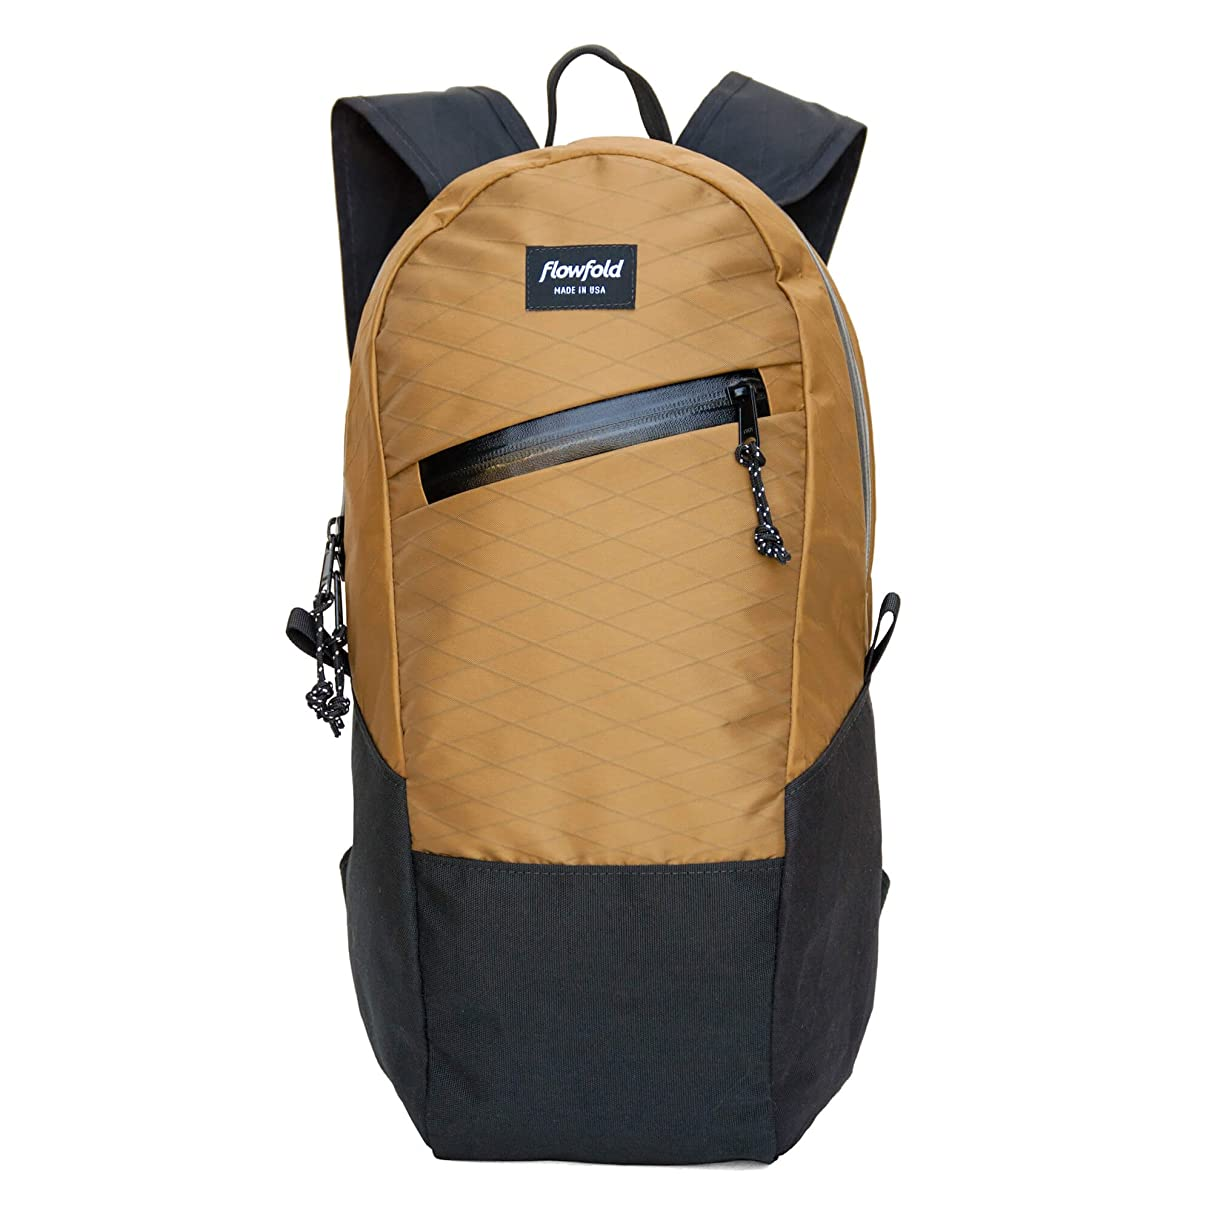 Flowfold Optimist 10L Mini Backpack - Ultra Lightweight Daypack - Made in the USA - Coyote Brown